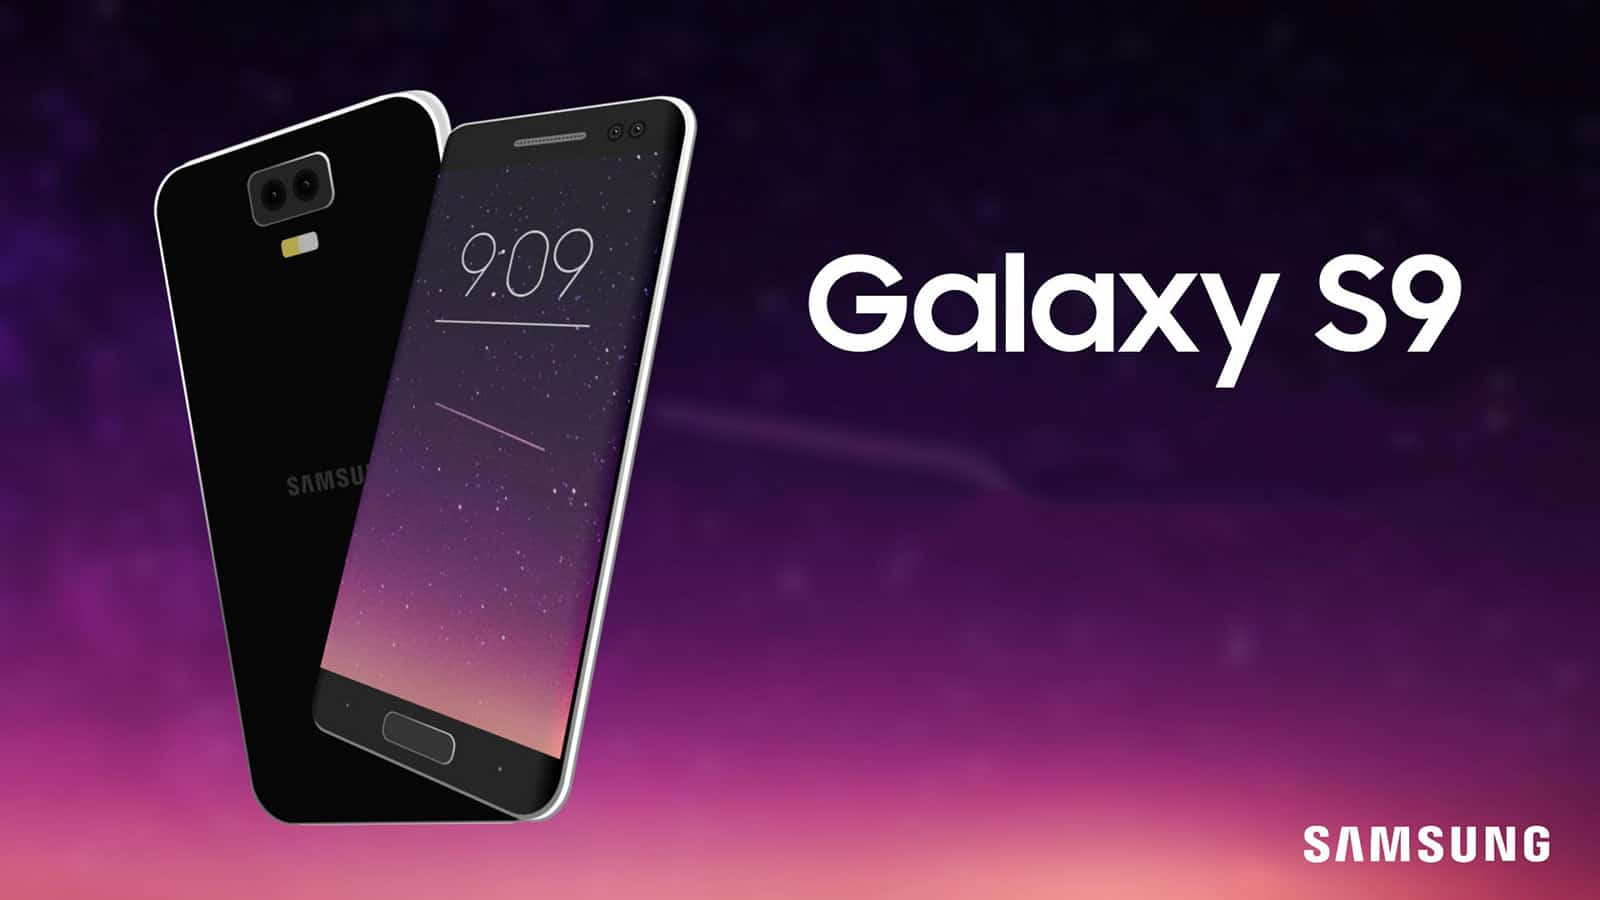 samsung-galaxy-s9-and-s9+